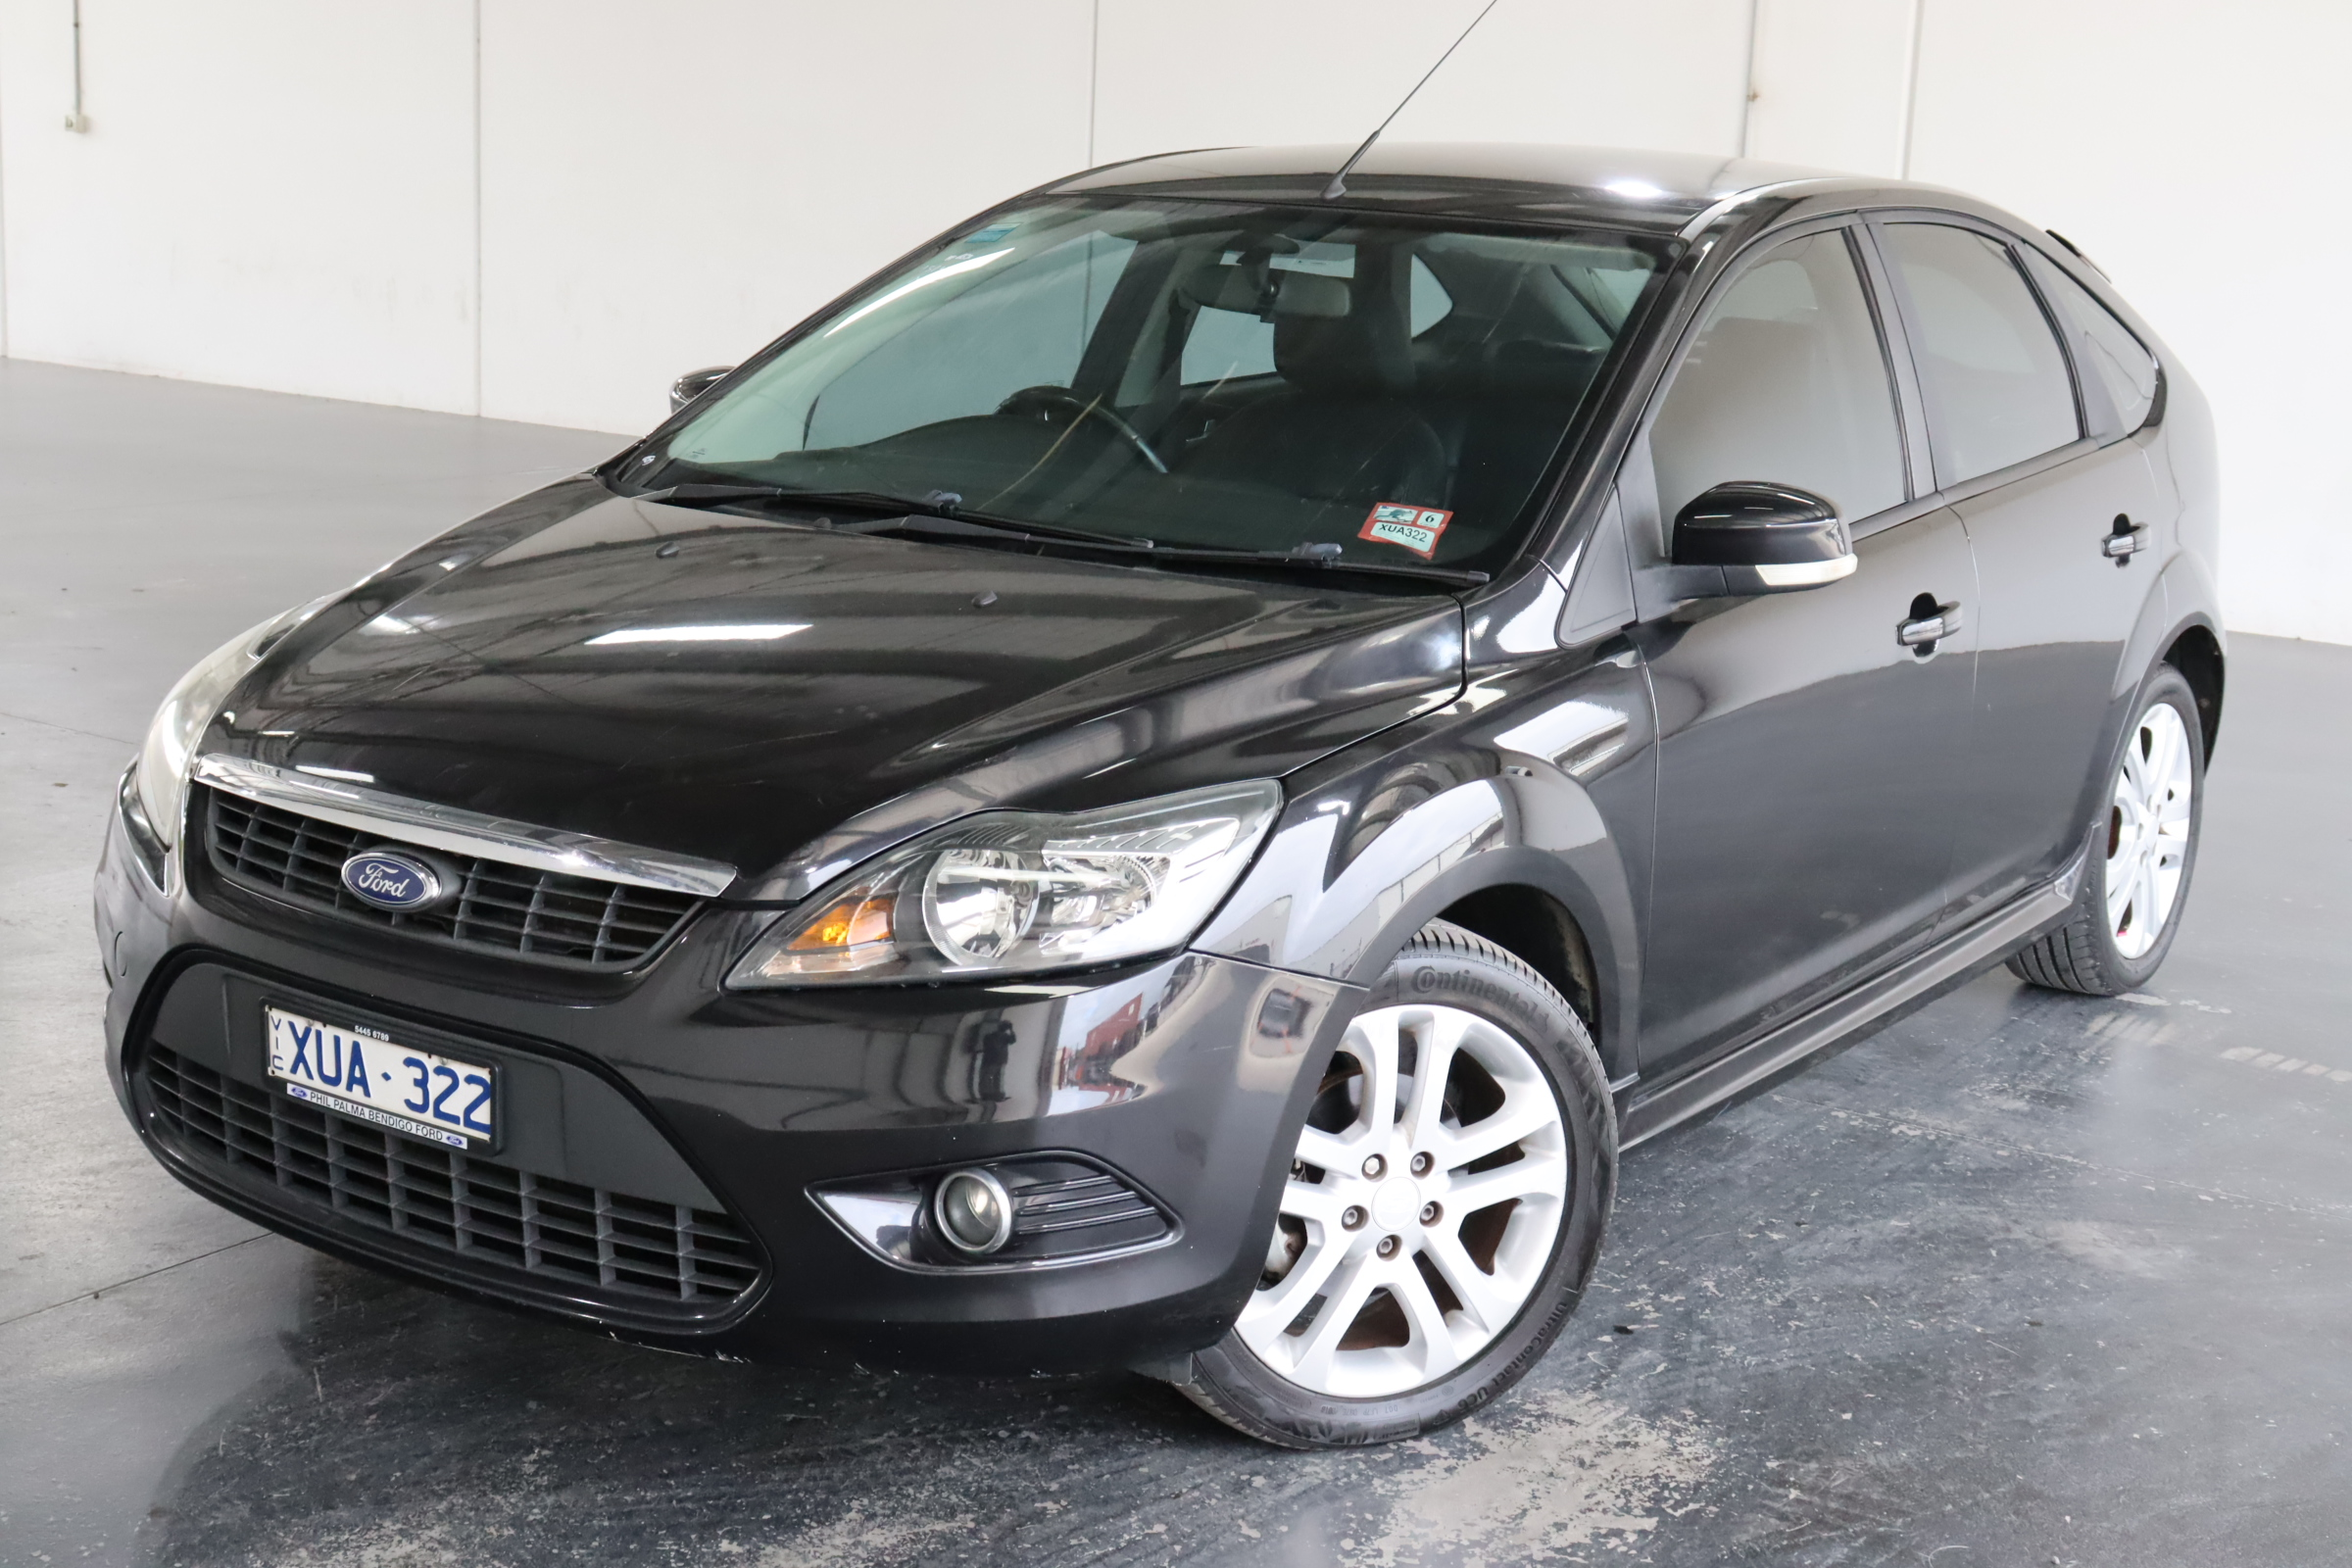 2010 Ford Focus Zetec LV Automatic Hatchback